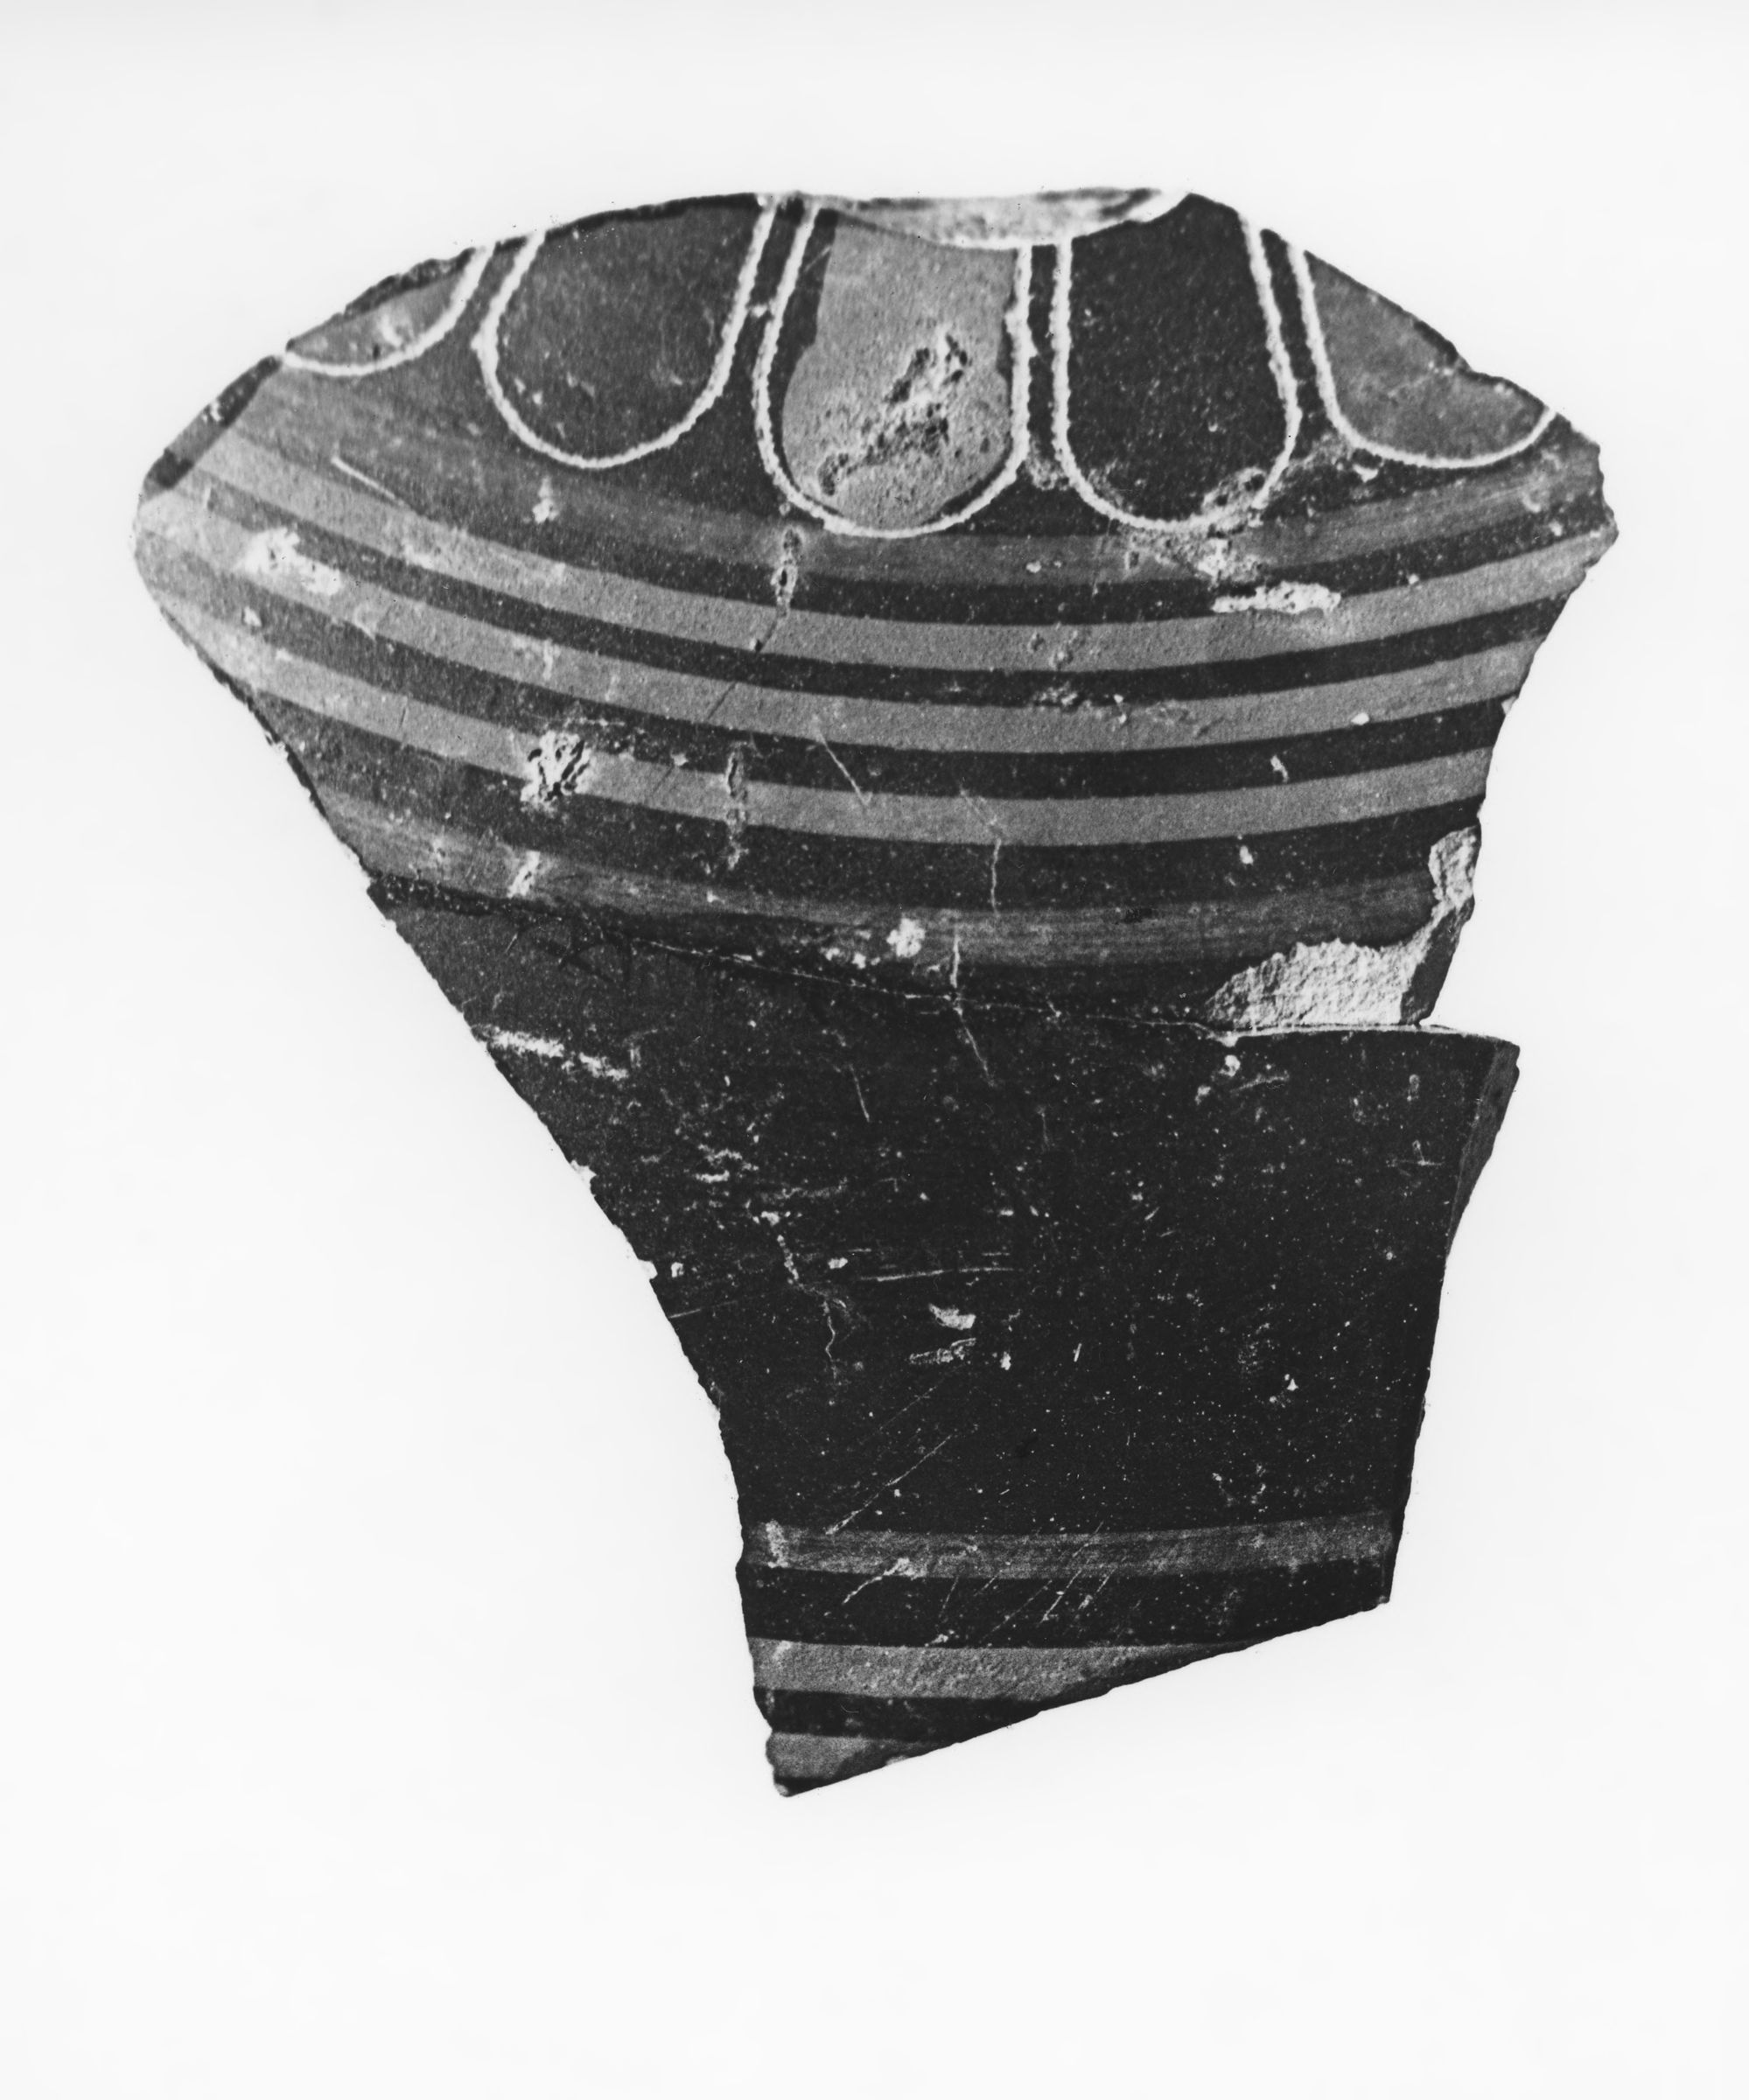 Late Protocorinthian Phiale or Plate Fragment